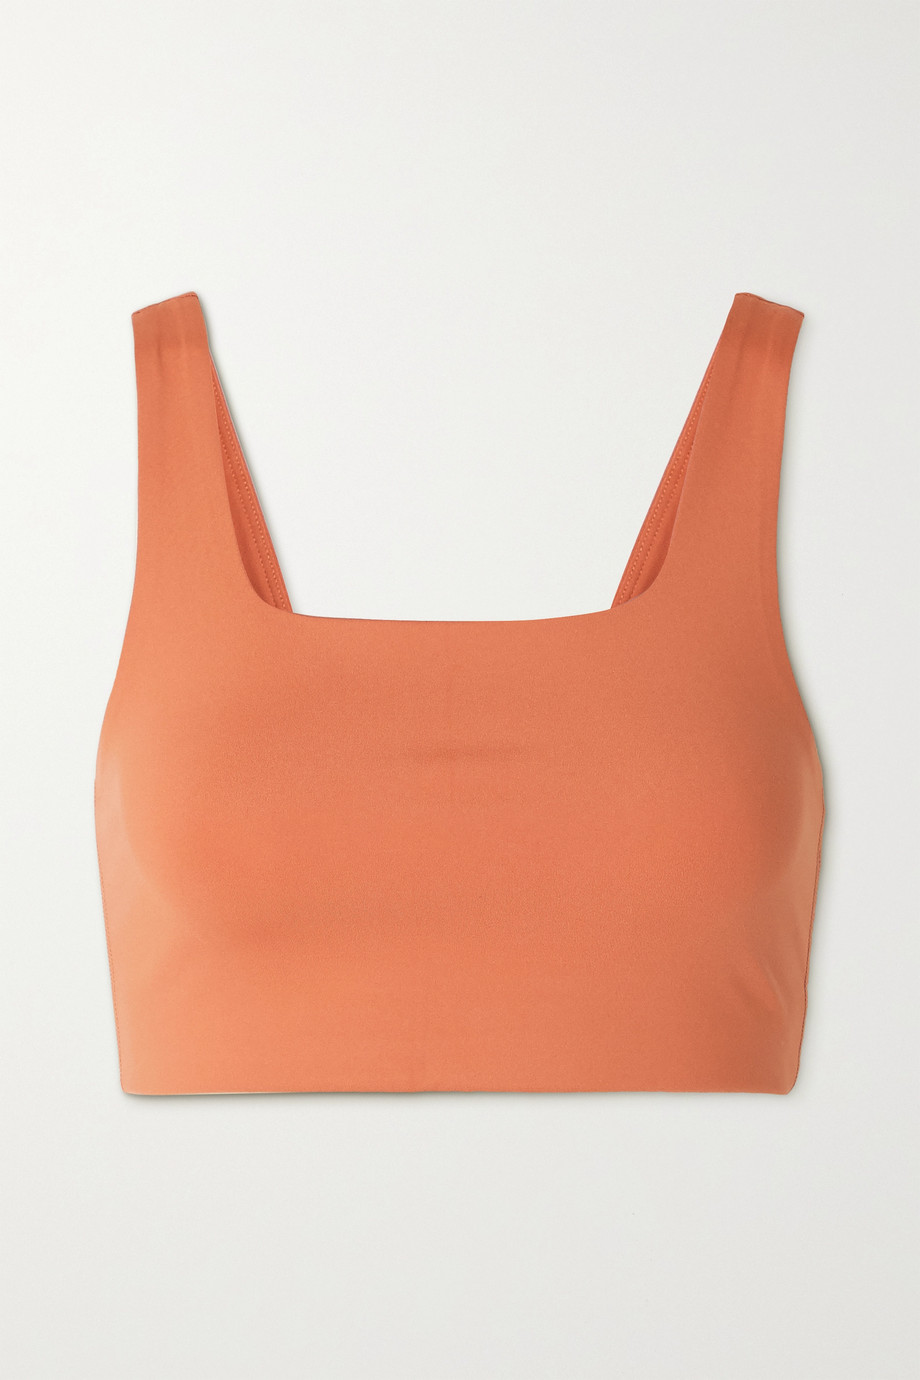 Girlfriend Collective Brassière de sport stretch Tommy